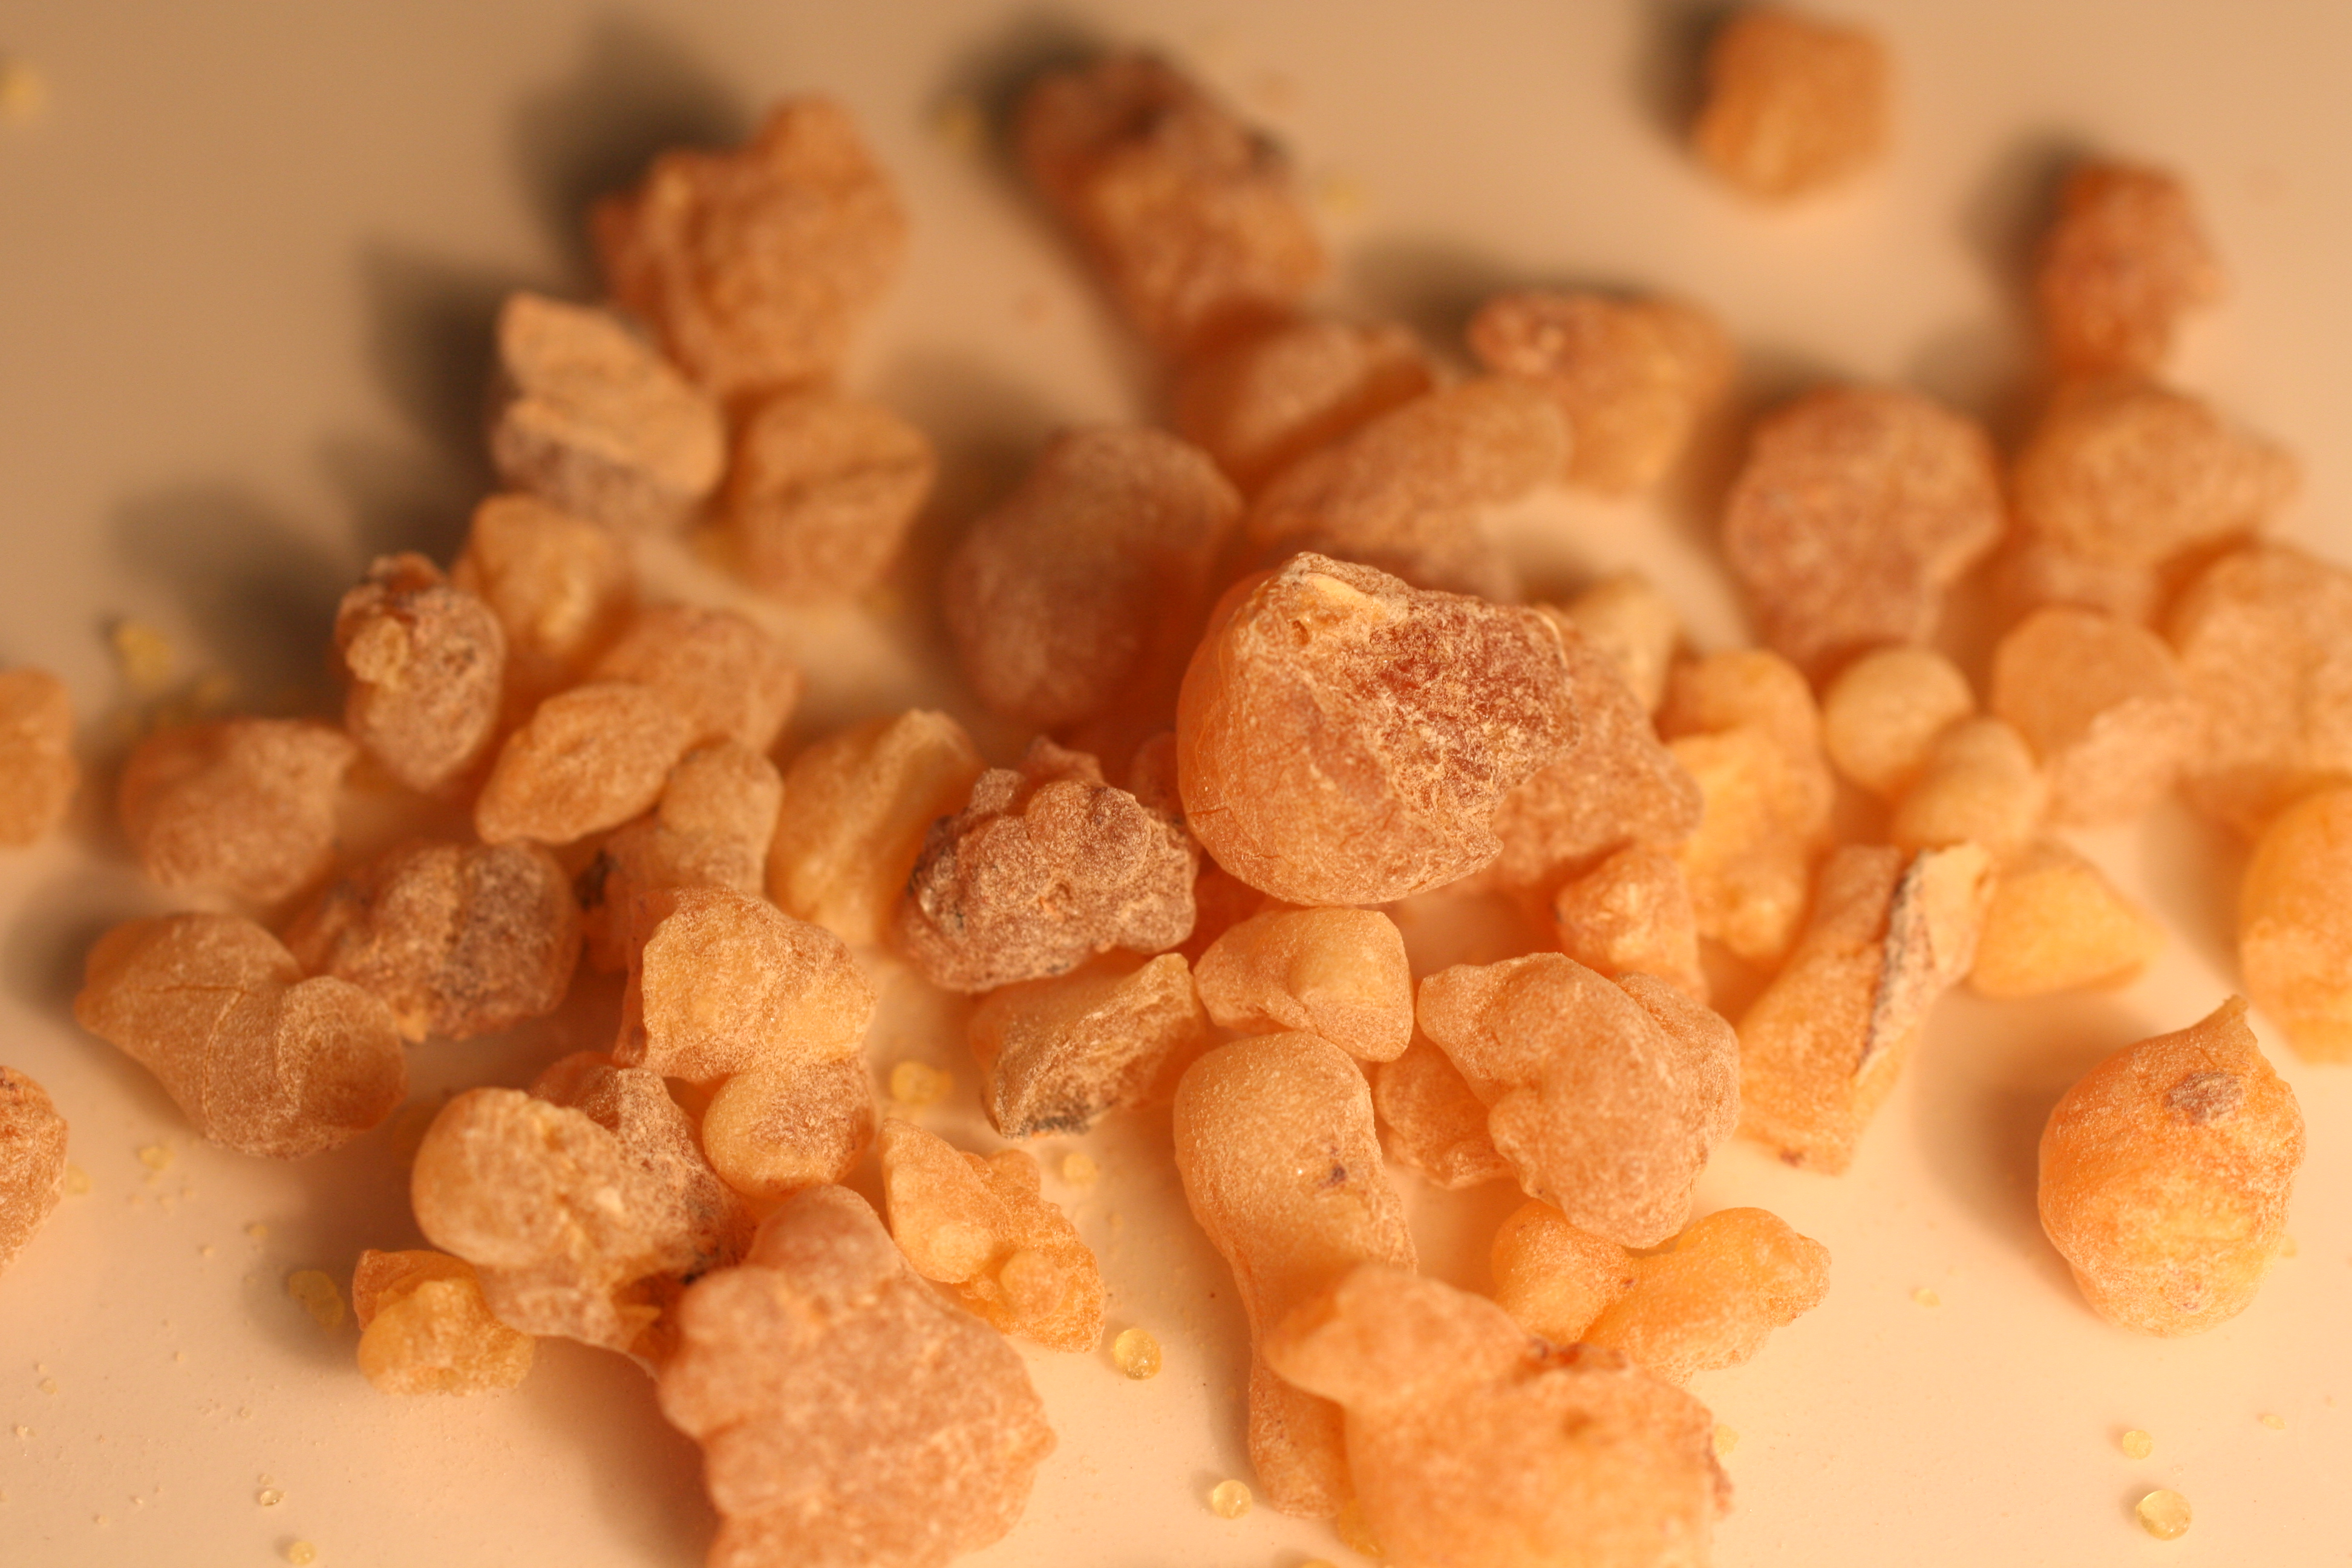 boswellia soy combination improves symptoms of colitis